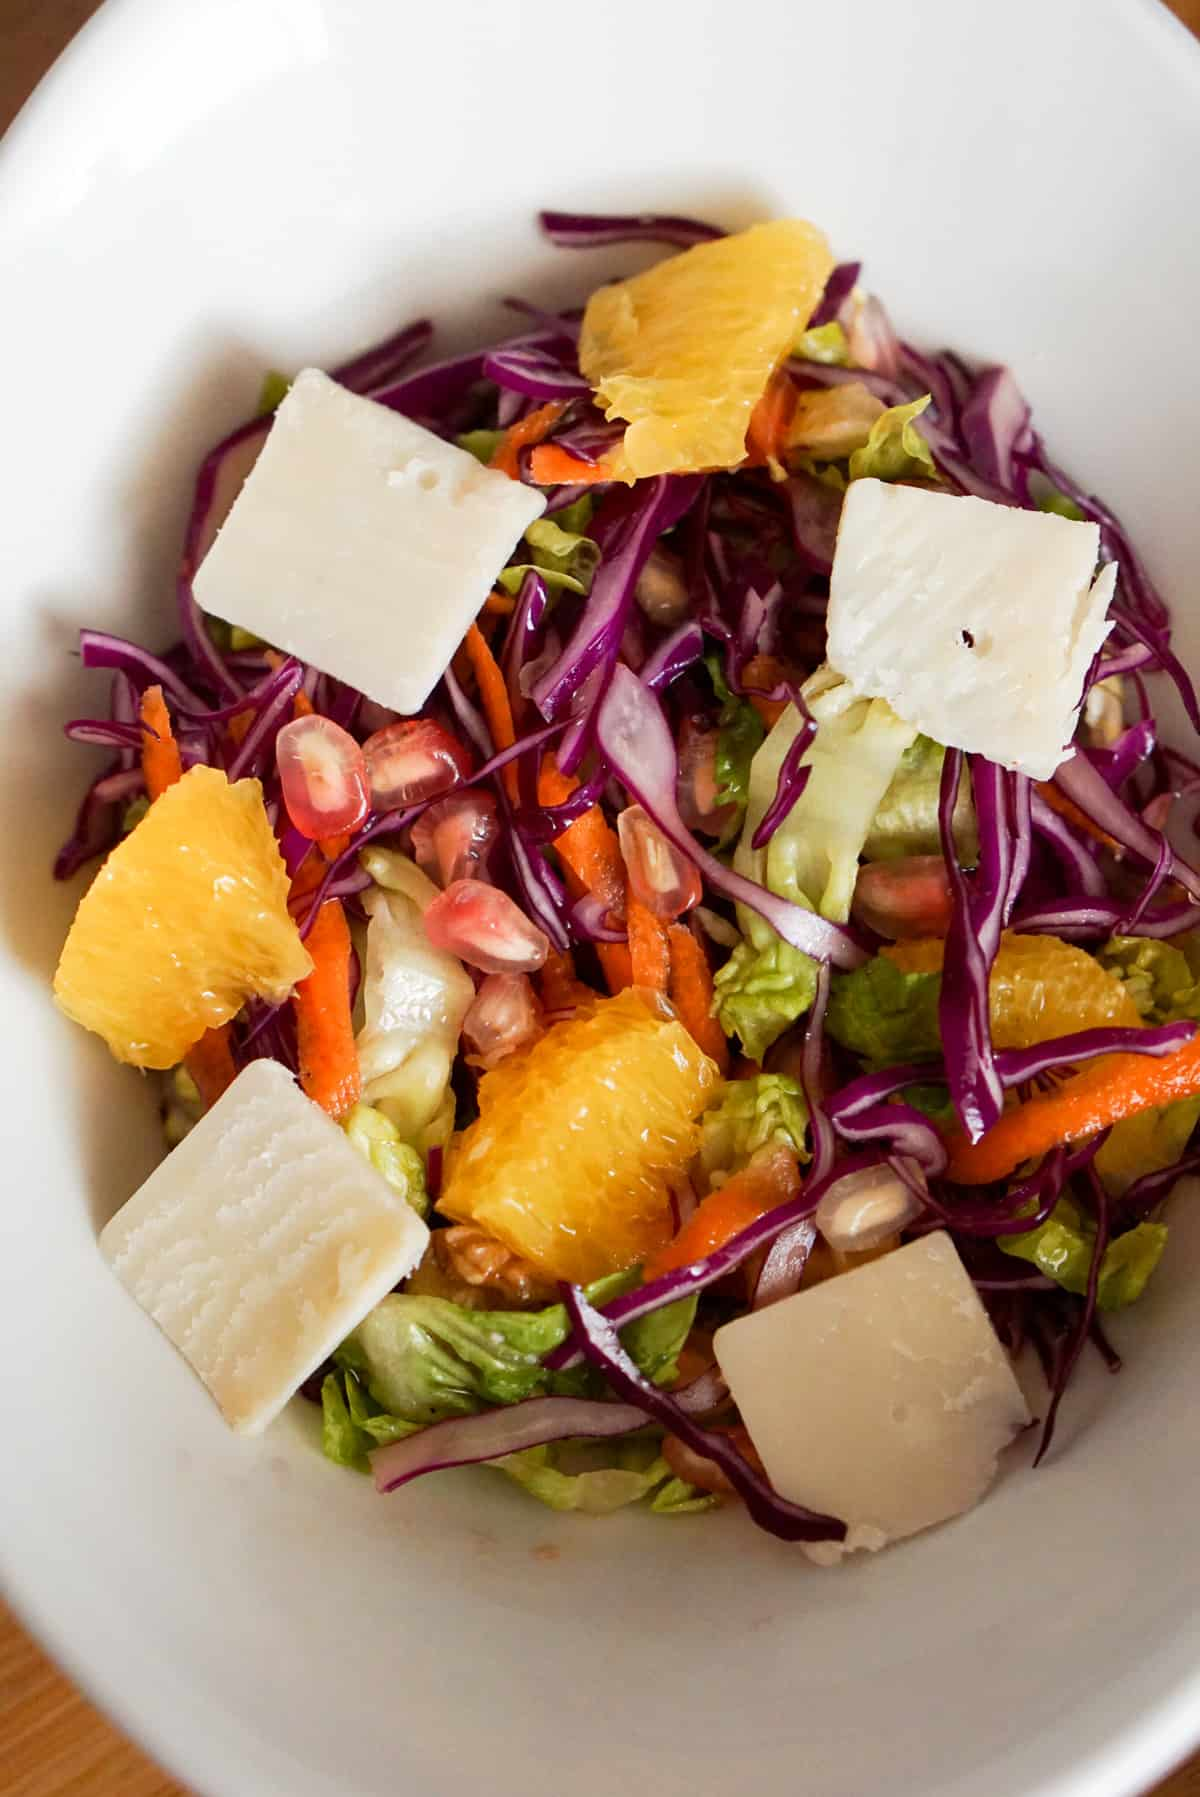 Winter salad in a white bowl: lettuce with shredded red cabbage and carrots, topped with cheese, orange slices and pomegranate seeds.